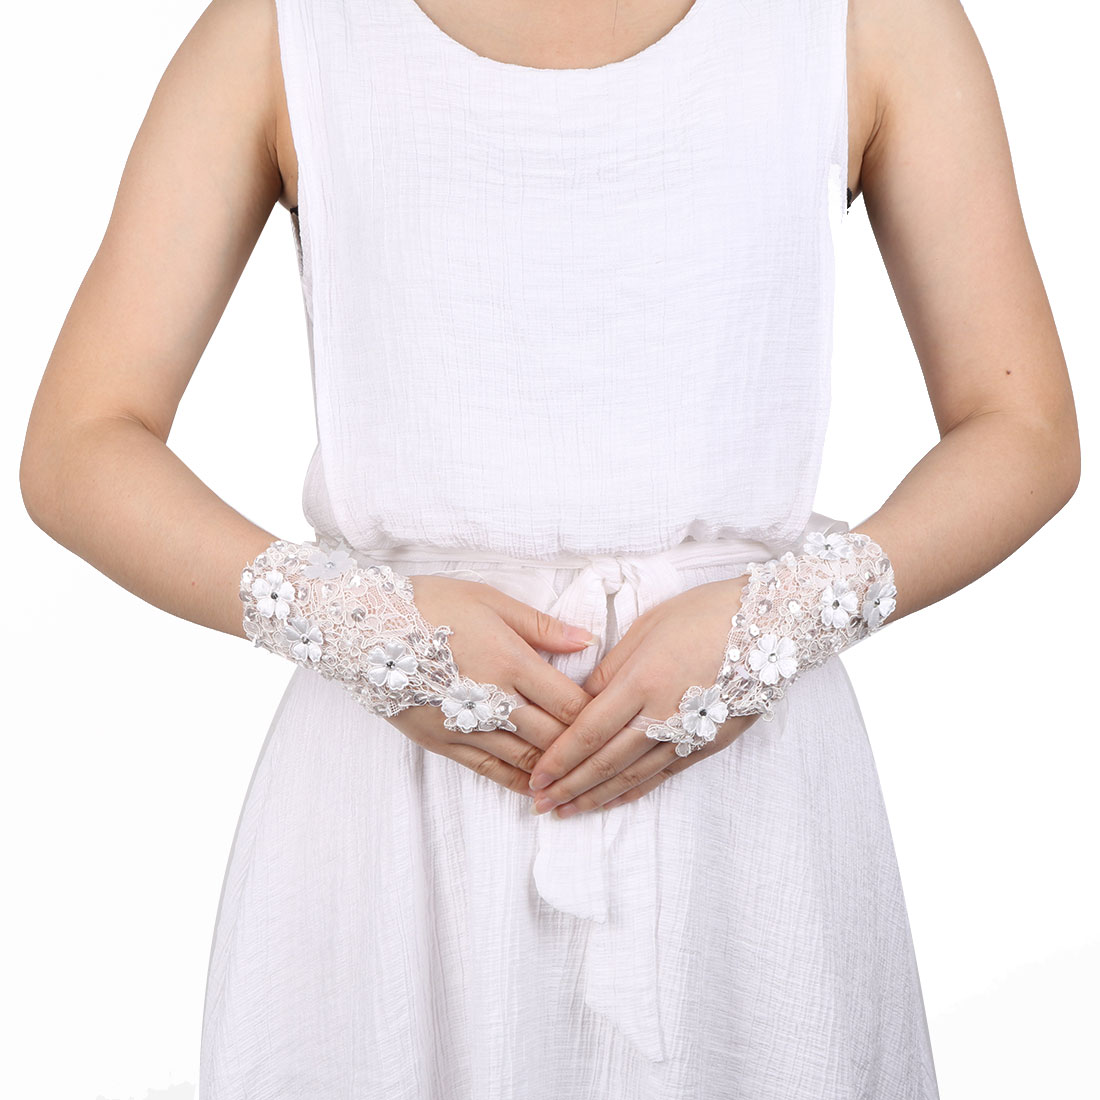 Party Polyester Floral Decor Bride Hand Embellishment Lace Fingerless Glove Pair